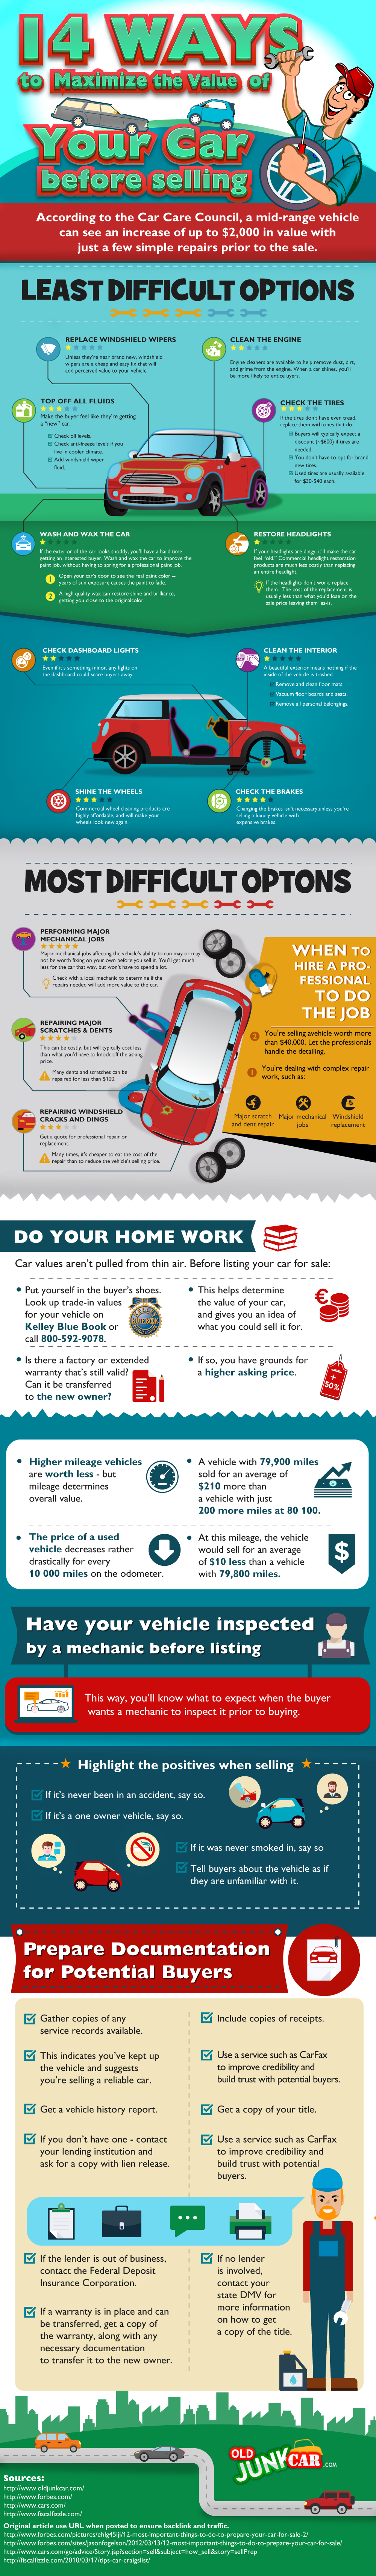 How to Maximize Resale Value of a Car - Infographics